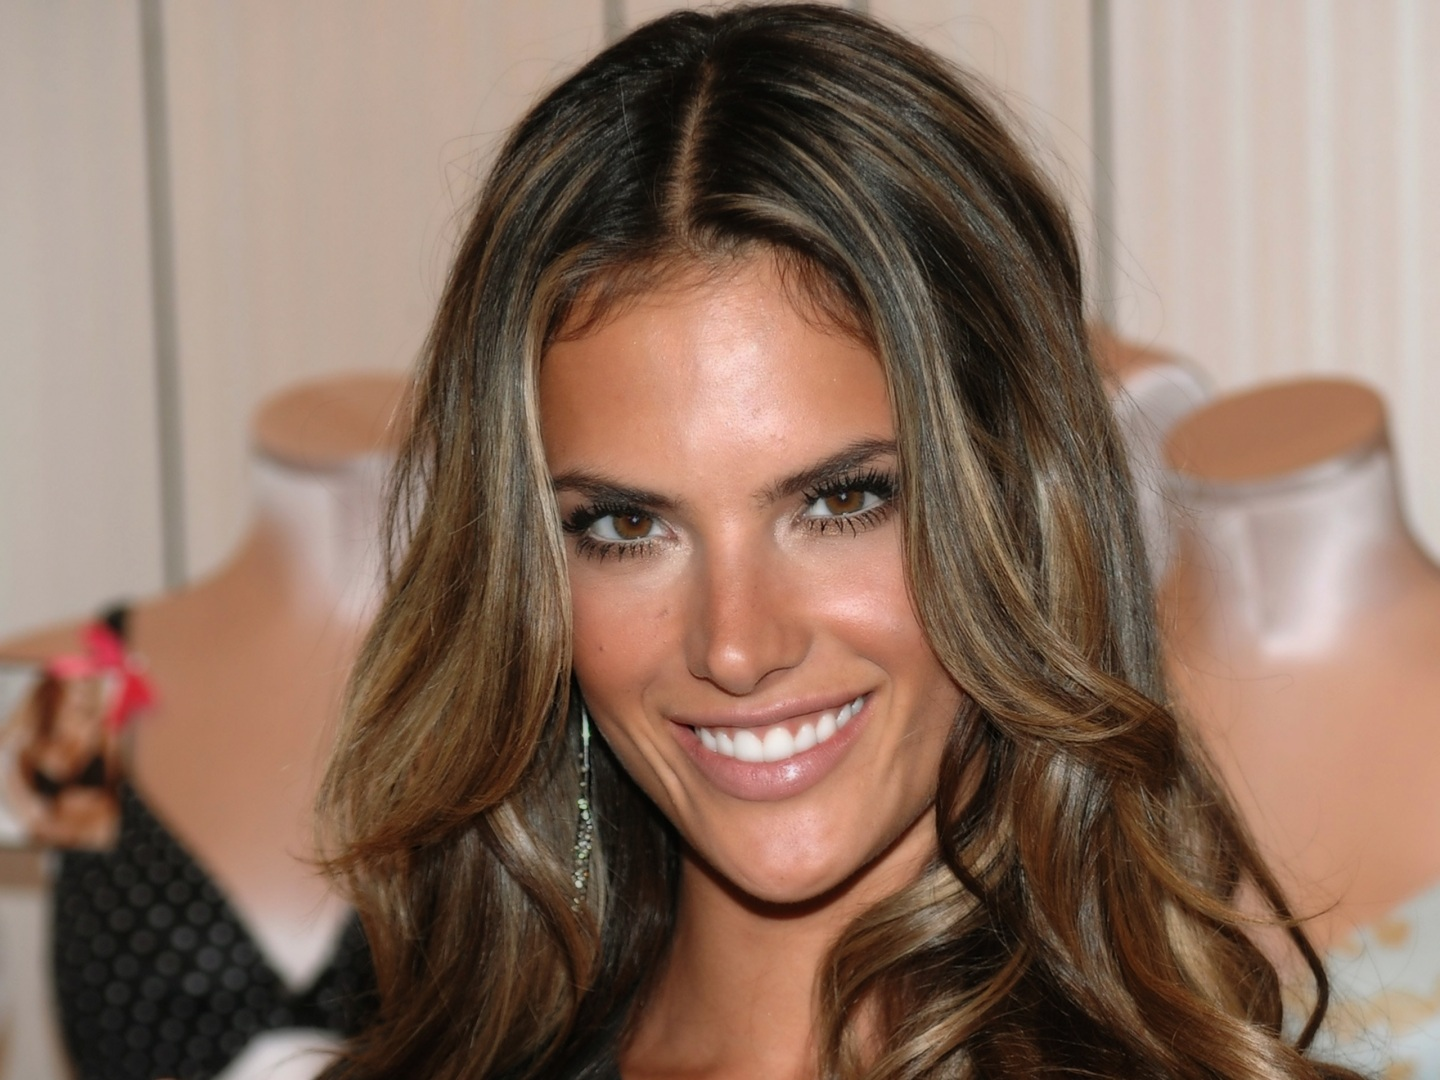 Highlighted Hair Styles: 45 Sunny And Sophisticated Brown With Blonde Highlight Looks